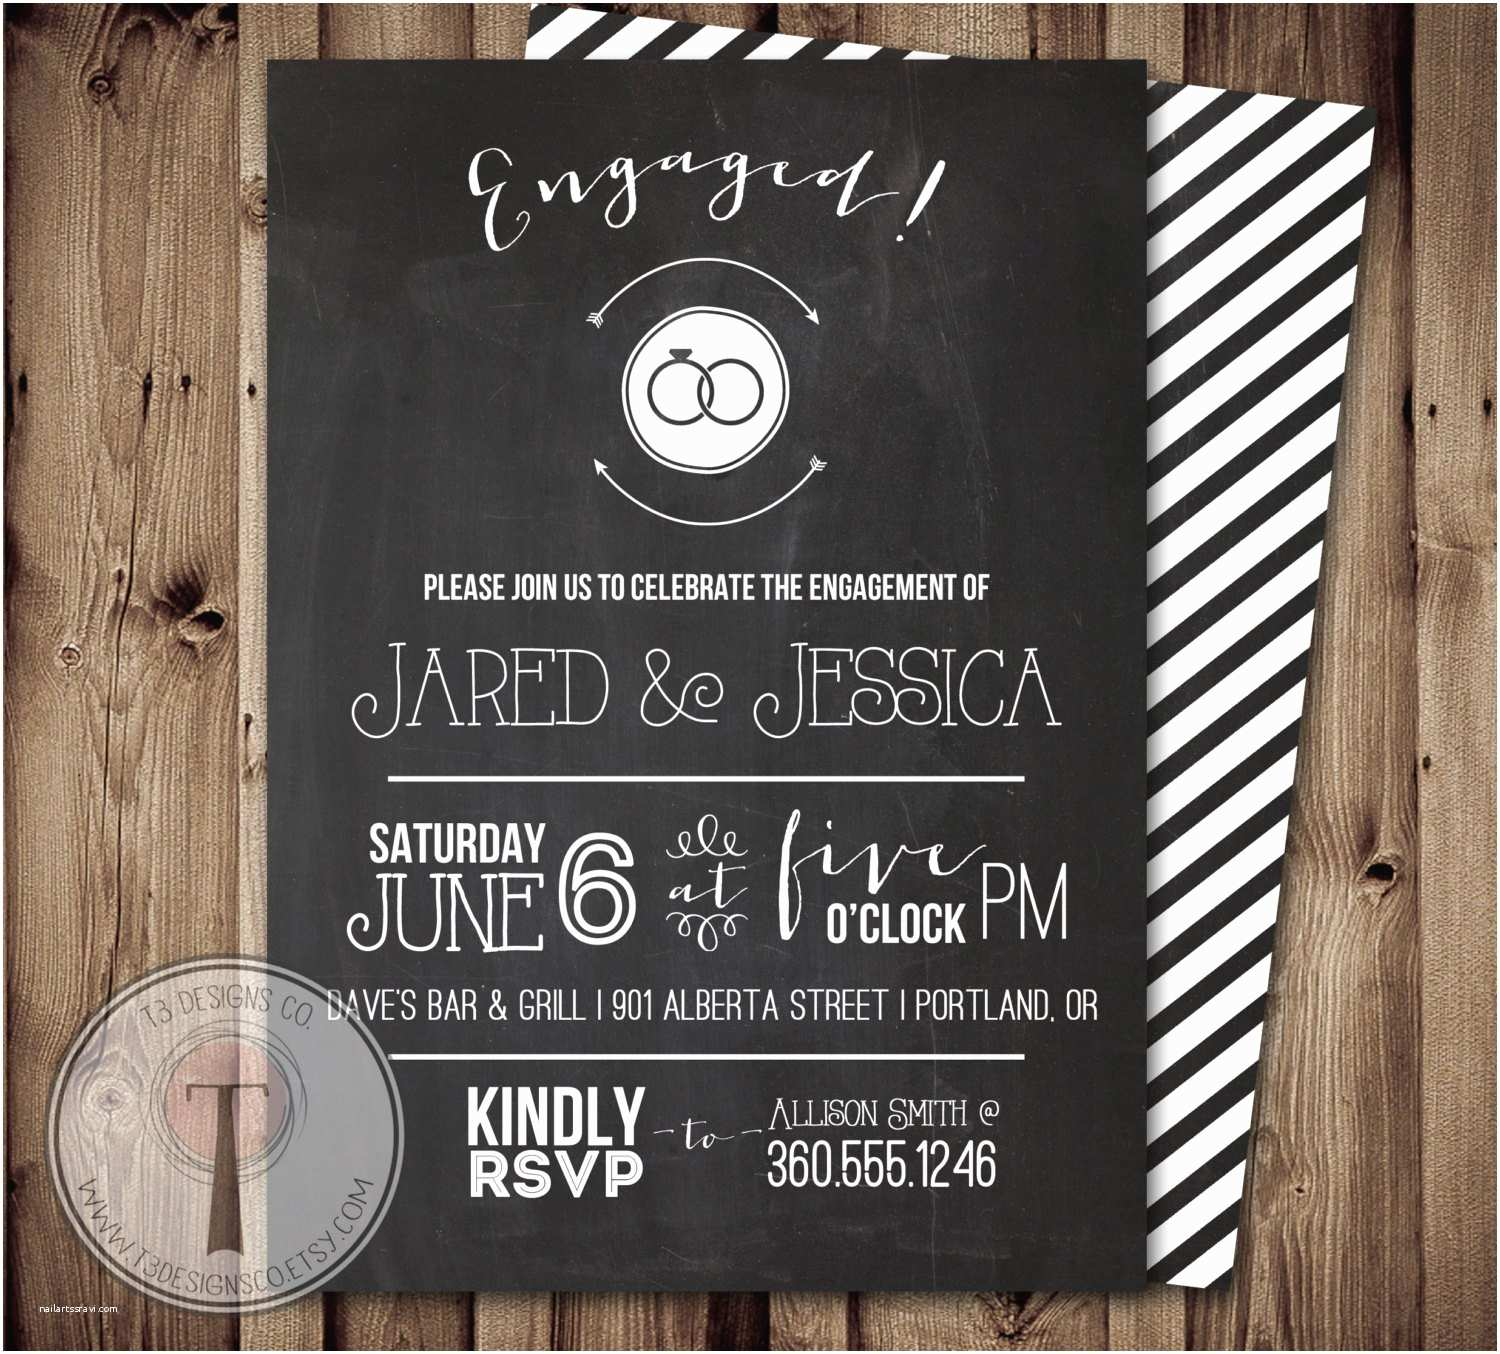 Engagement Party Invitations Etsy Chalkboard Engagement Party Invitation Engagement Party